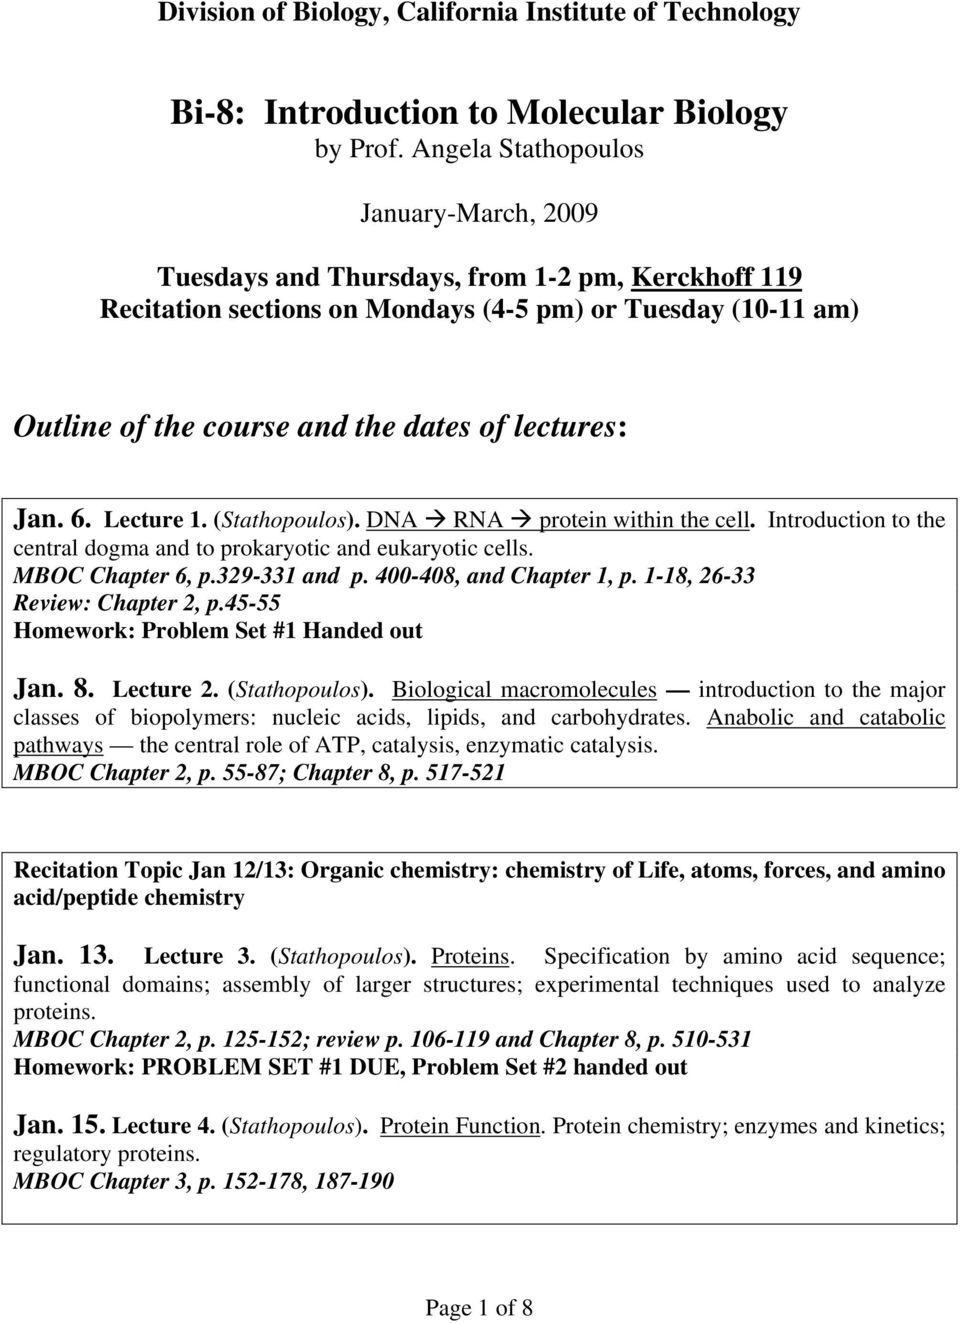 lectures: Jan. 6. Lecture 1. (Stathopoulos). DNA RNA protein within the cell. Introduction to the central dogma and to prokaryotic and eukaryotic cells. MBOC Chapter 6, p.329-331 and p.